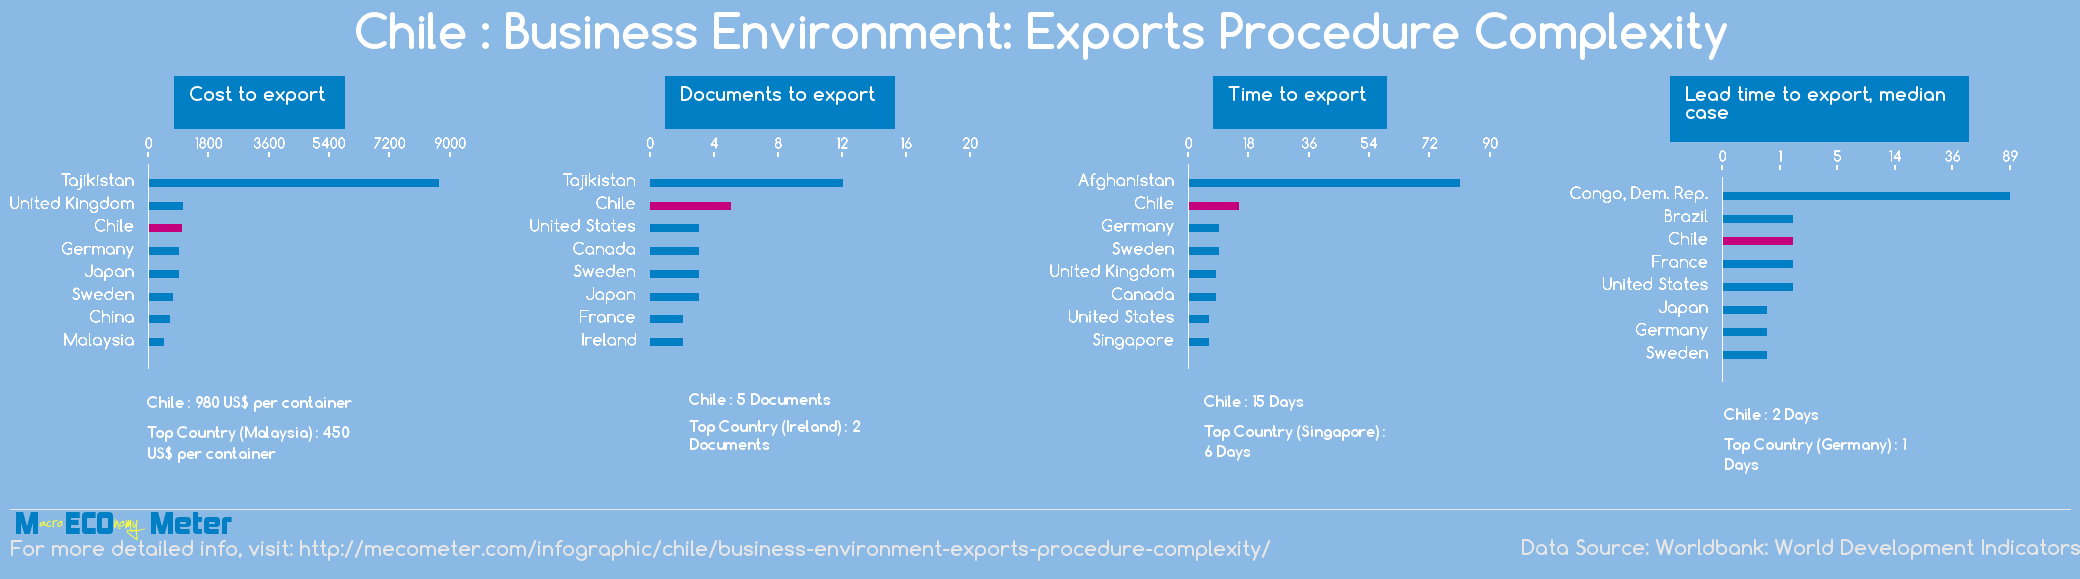 Chile : Business Environment: Exports Procedure Complexity